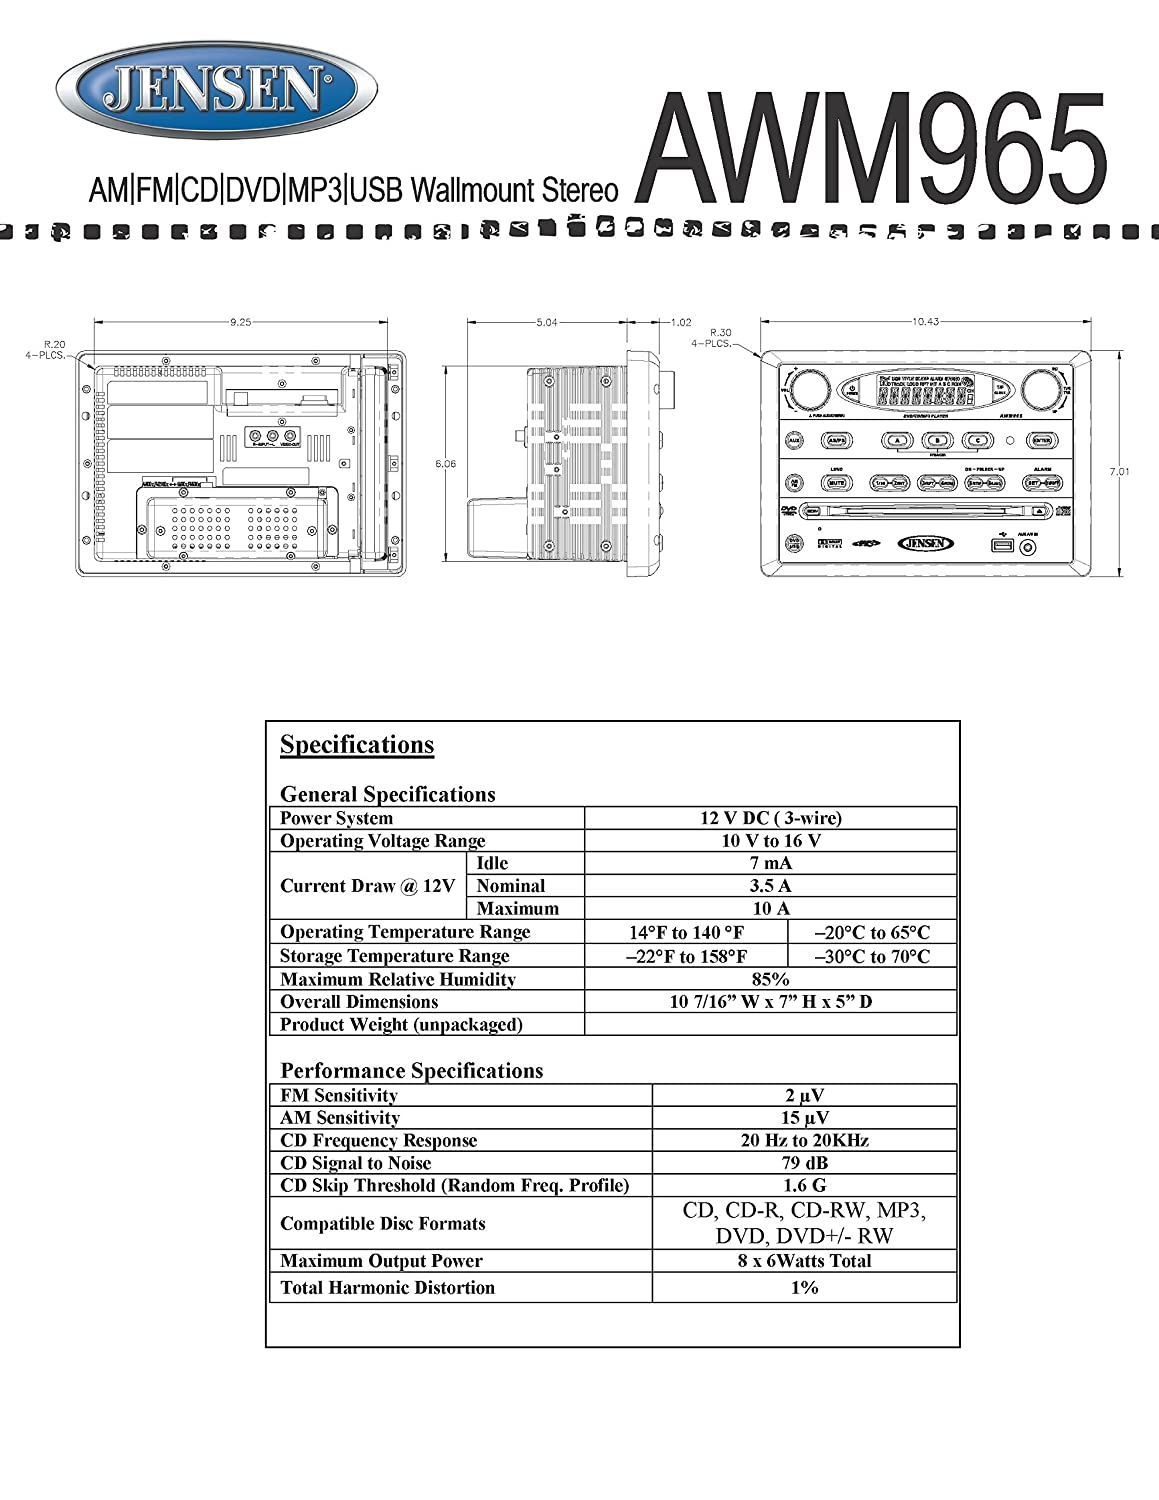 jensen uv10 stereo wiring diagram 0ad822 jensen dvd player with radio wiring diagram wiring resources  dvd player with radio wiring diagram